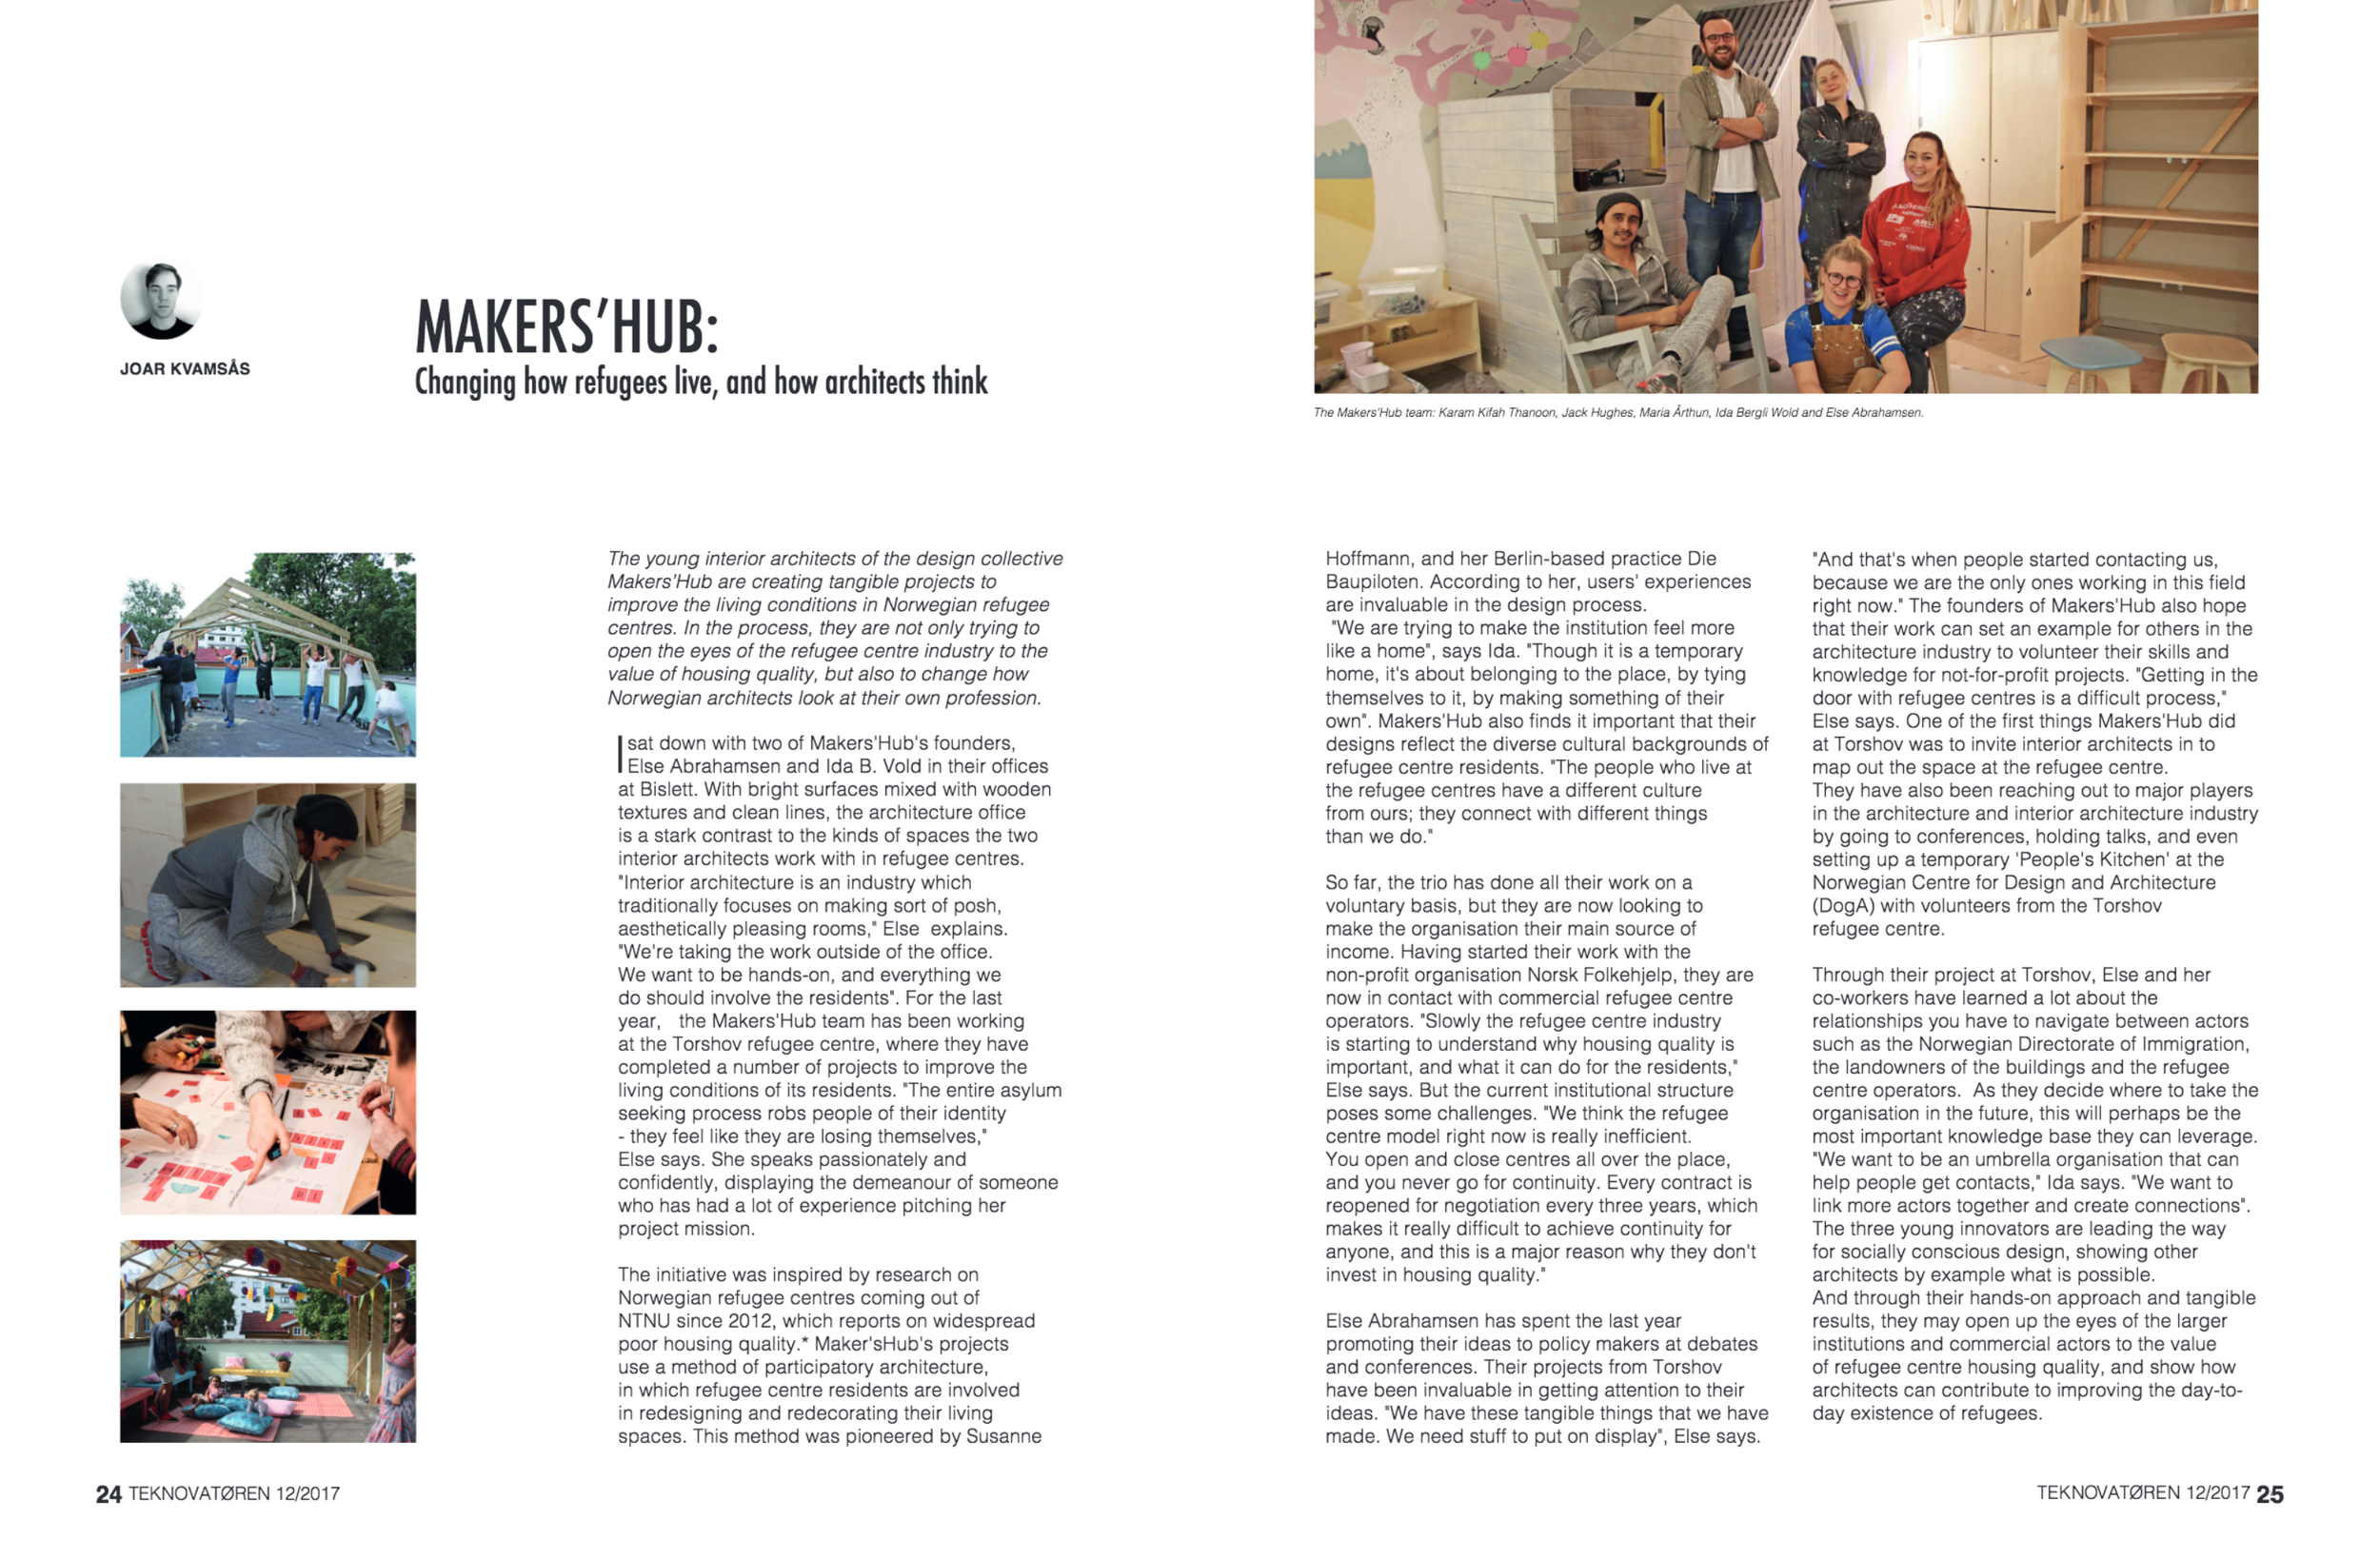 """ARTICLE ABOUT MAKERSHUB WORK, January 2017:  """"Changing how refugees live, and how architects think"""", Teknovatøren"""